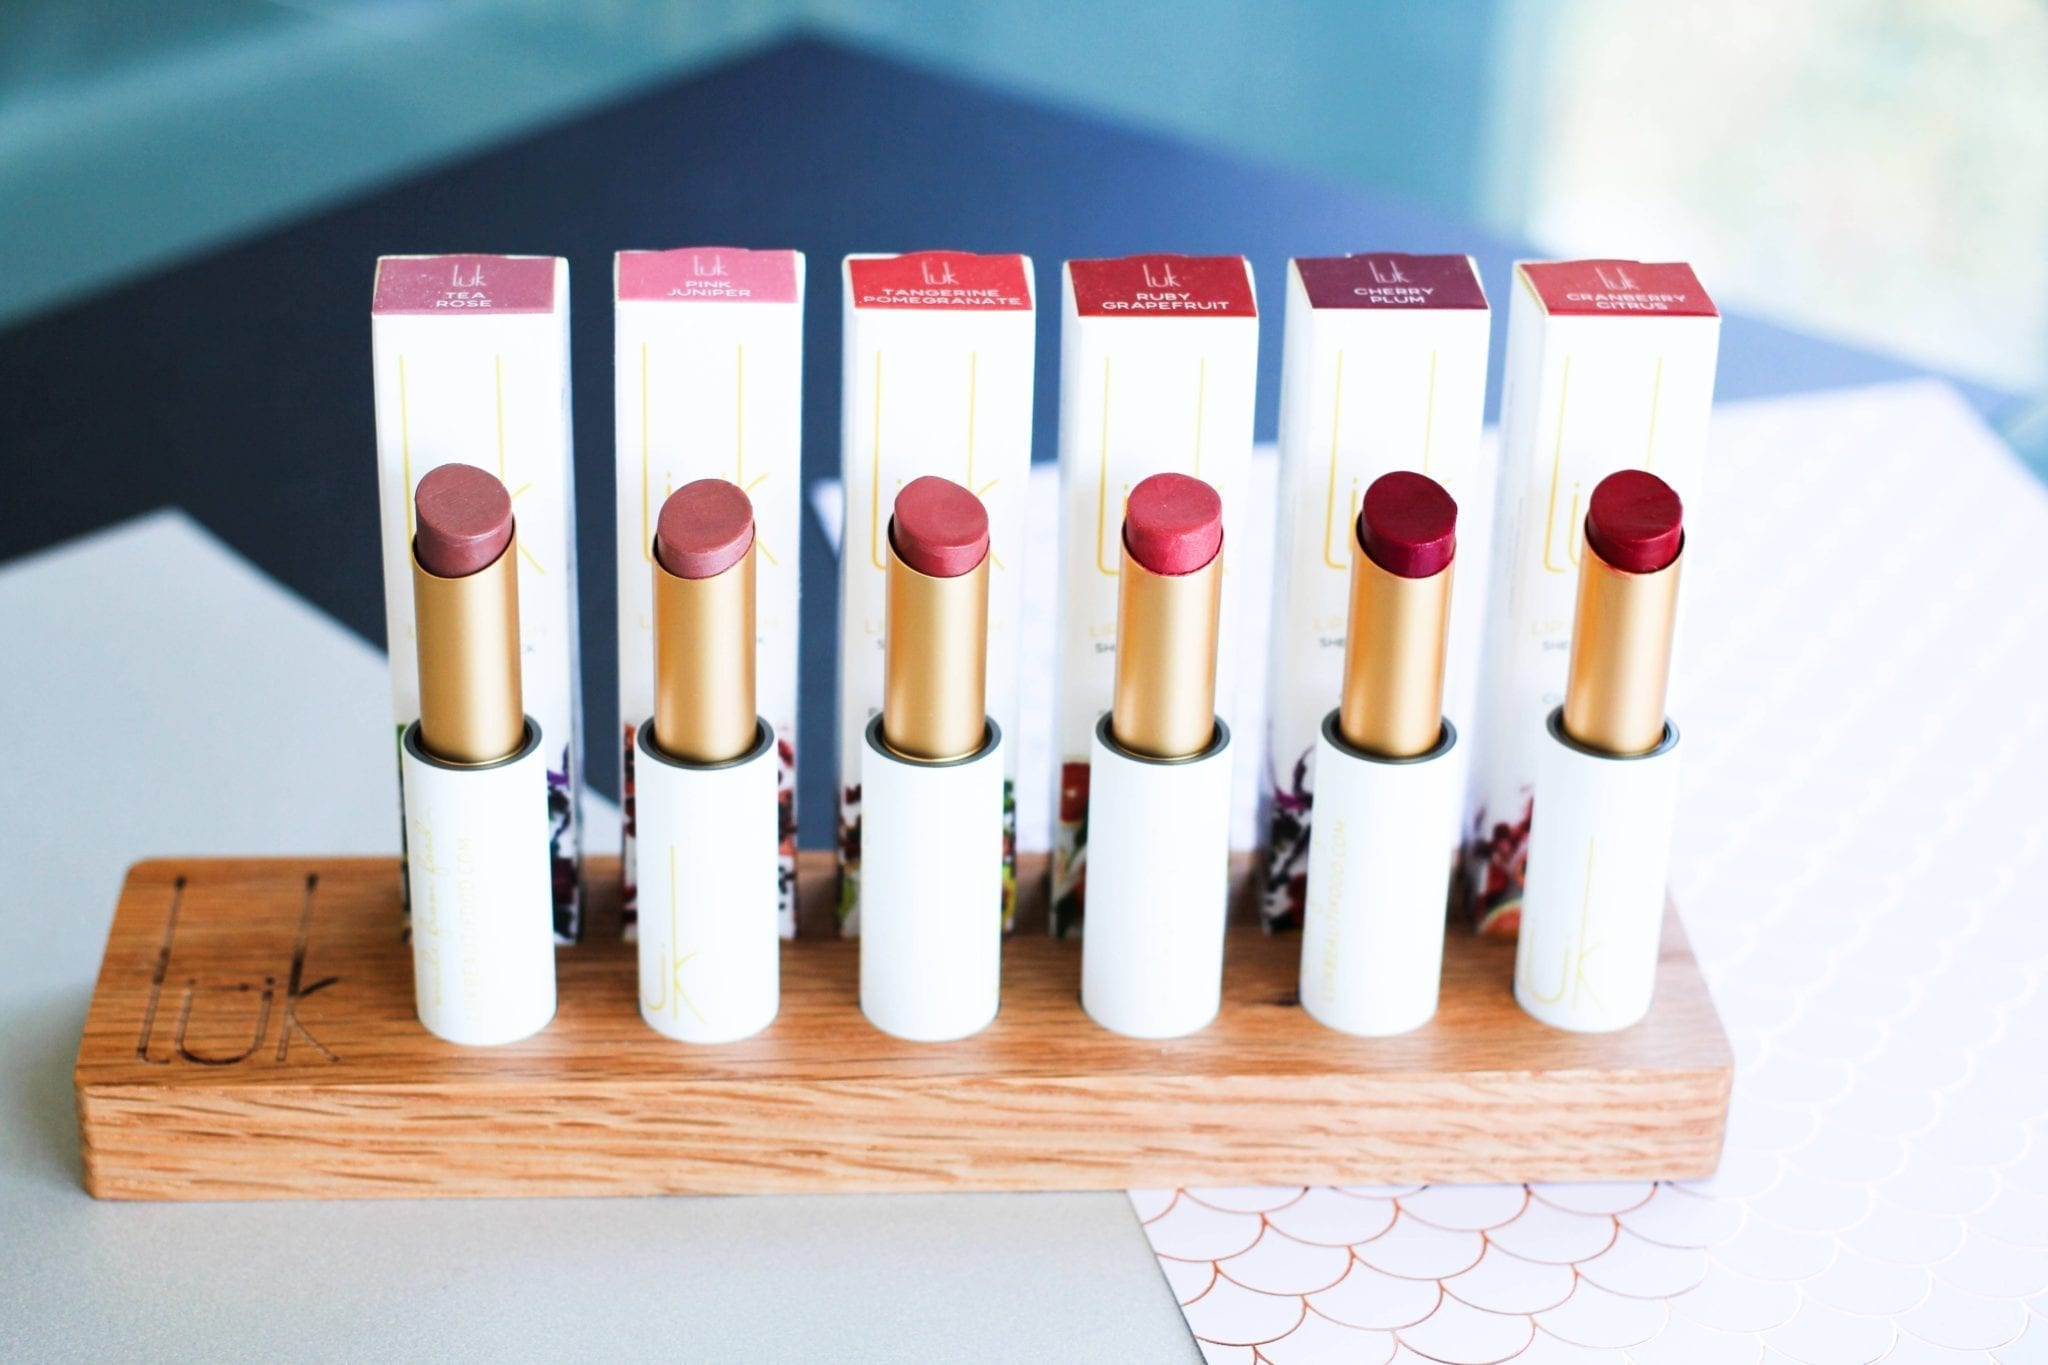 Edible Beauty – Natural Lipstick made from food